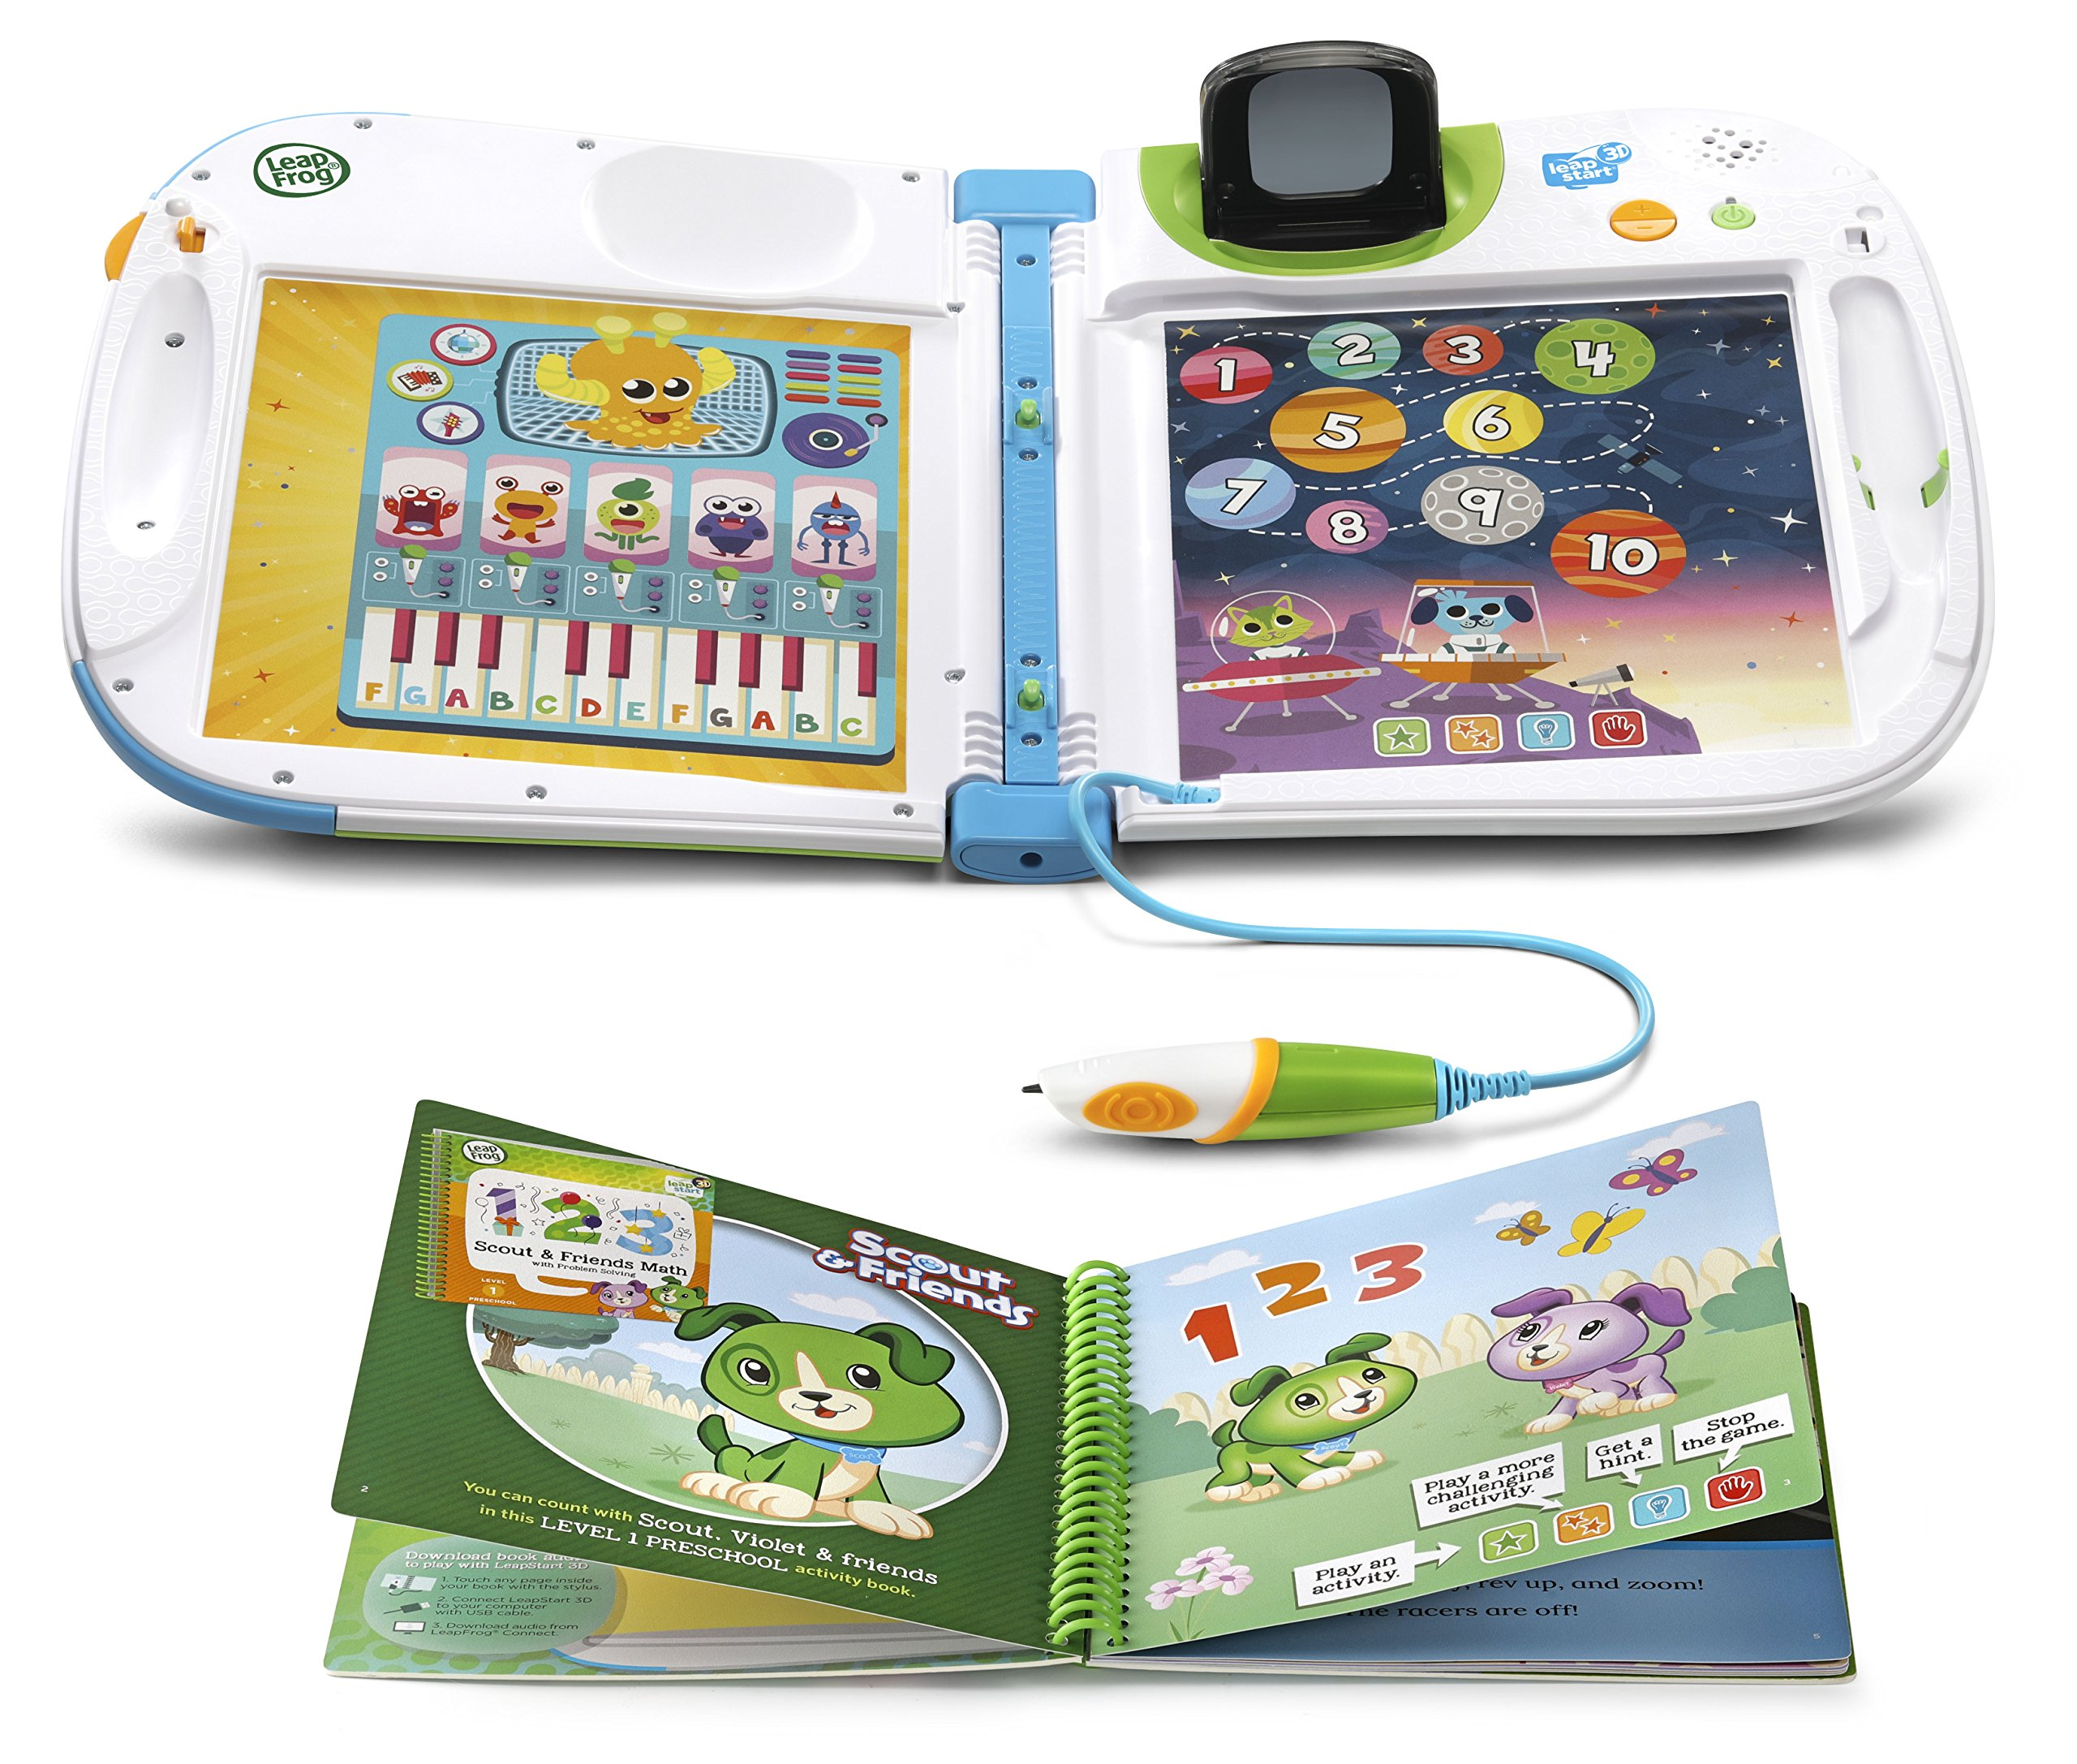 LeapFrog LeapStart 3D Interactive Learning System (Frustration Free Packaging), Green by LeapFrog (Image #4)